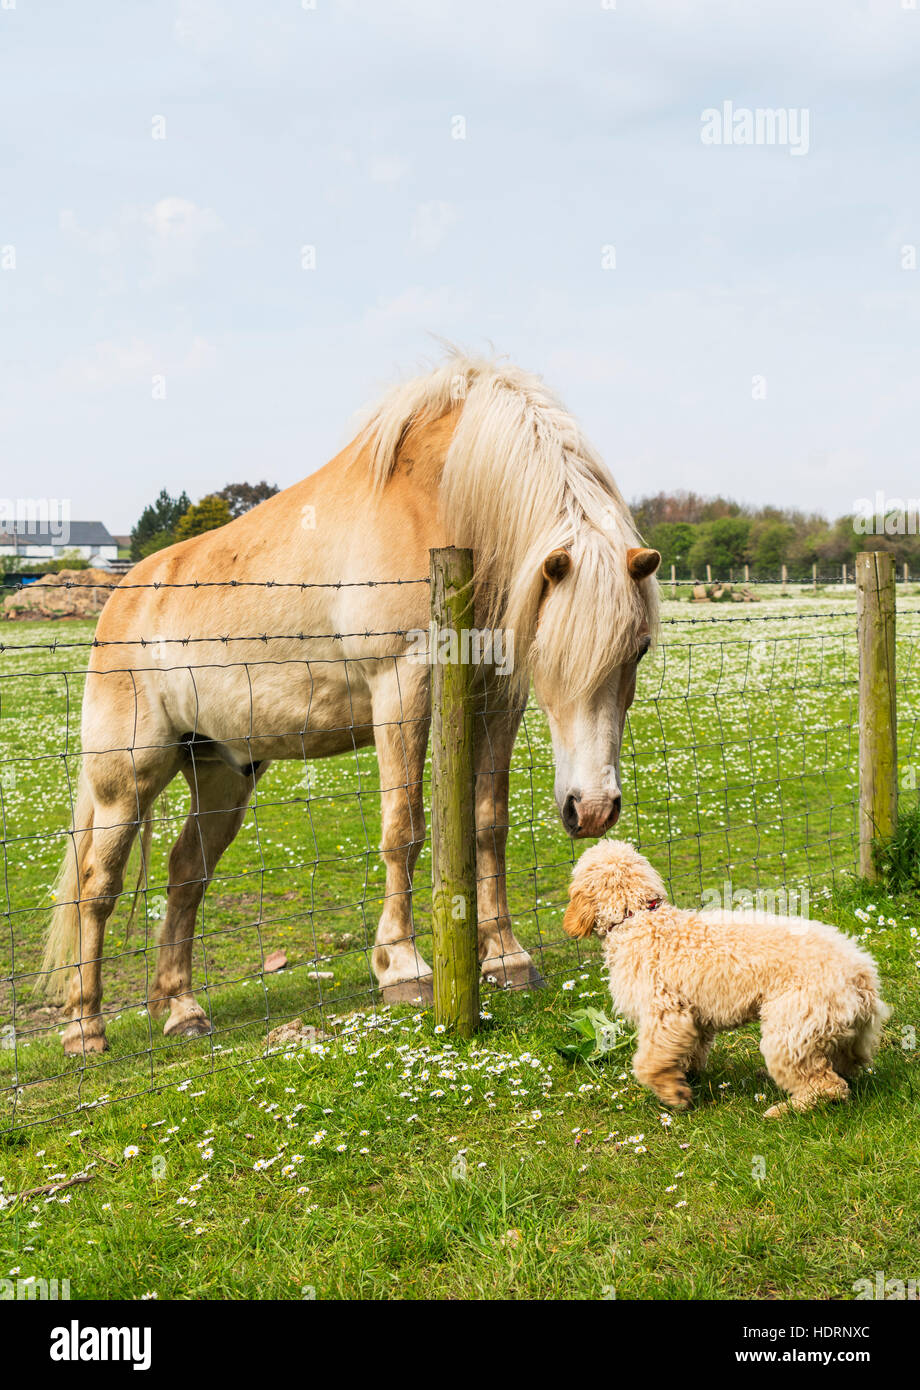 A blond cockapoo and blond horse meet at a fence and greet one stock a blond cockapoo and blond horse meet at a fence and greet one another south shields tyne and wear england m4hsunfo